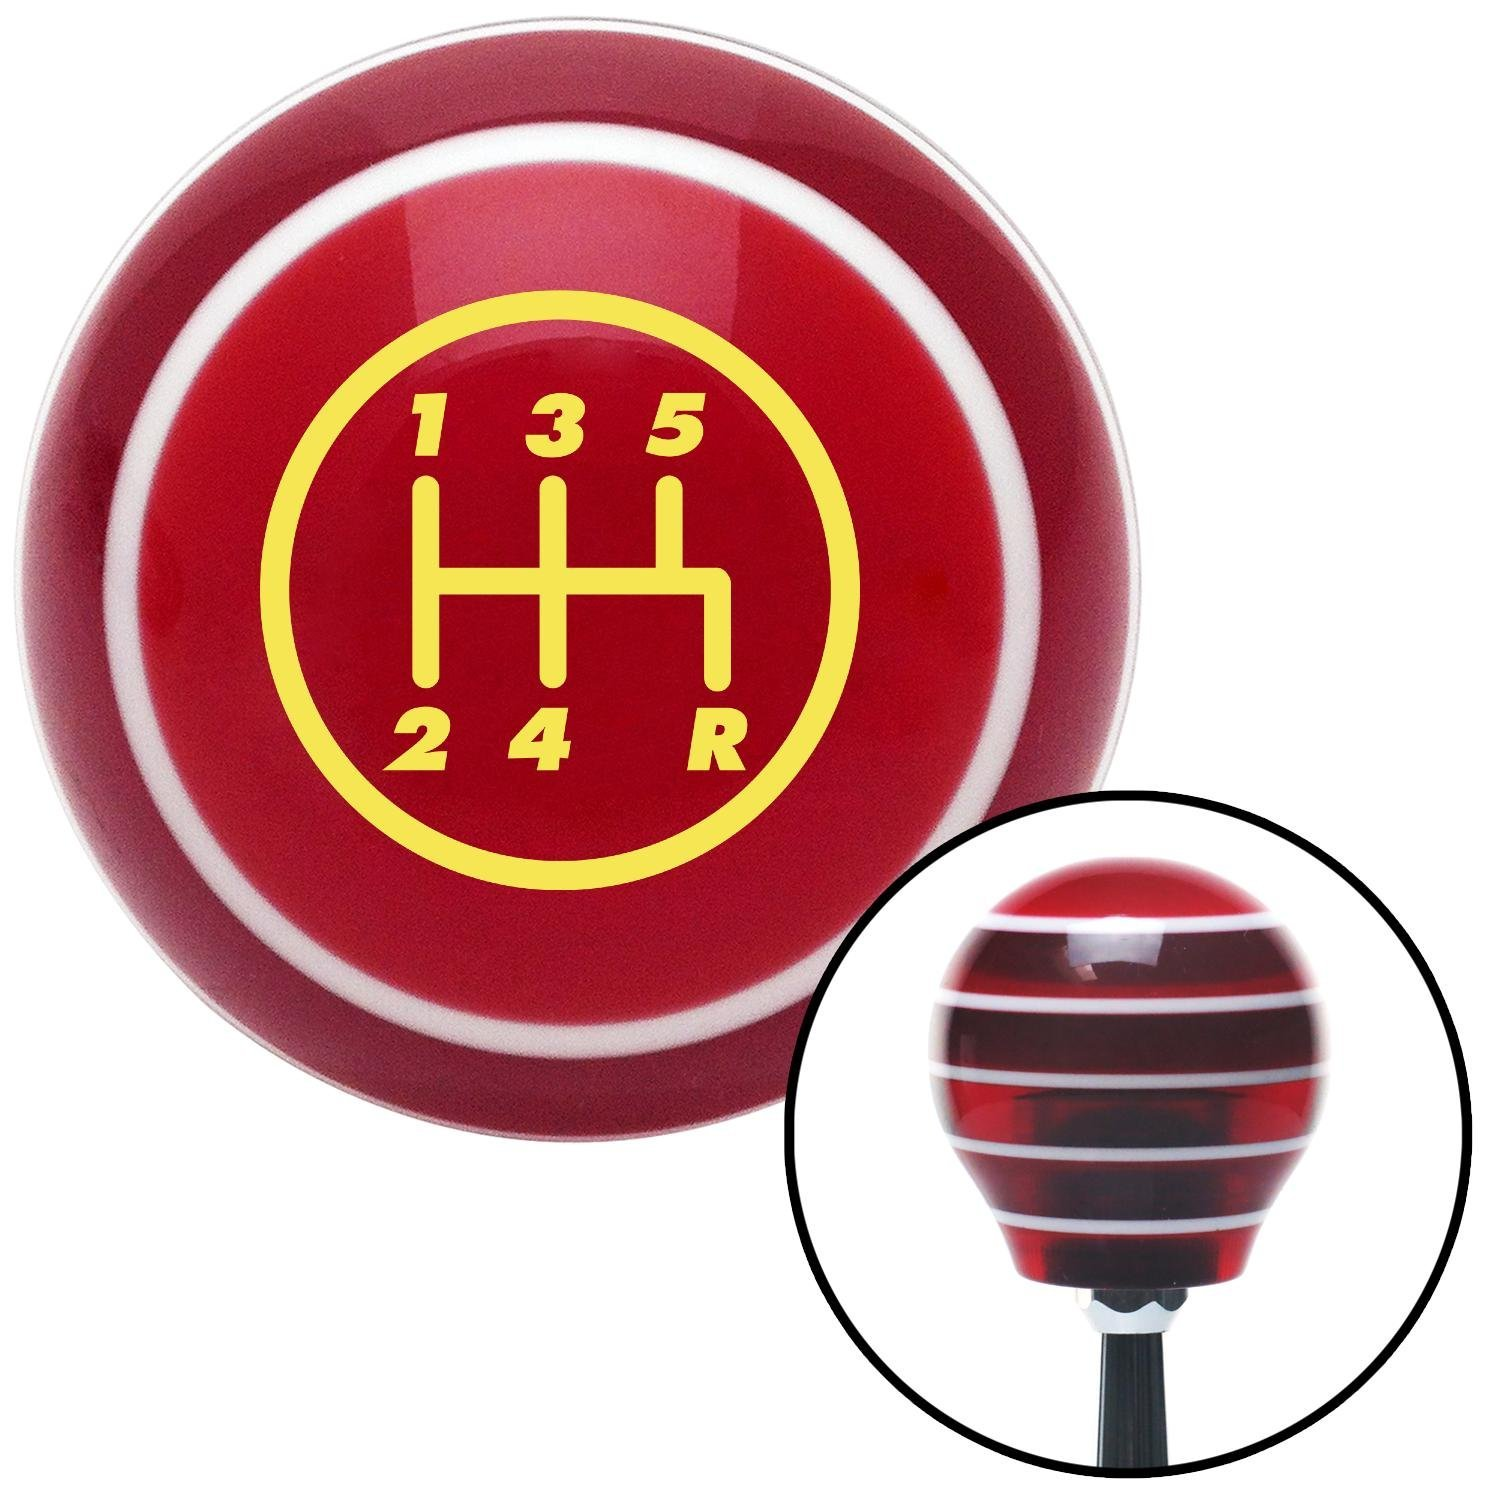 Yellow 5 Speed Shift Pattern - 5RDR American Shifter 117334 Red Stripe Shift Knob with M16 x 1.5 Insert